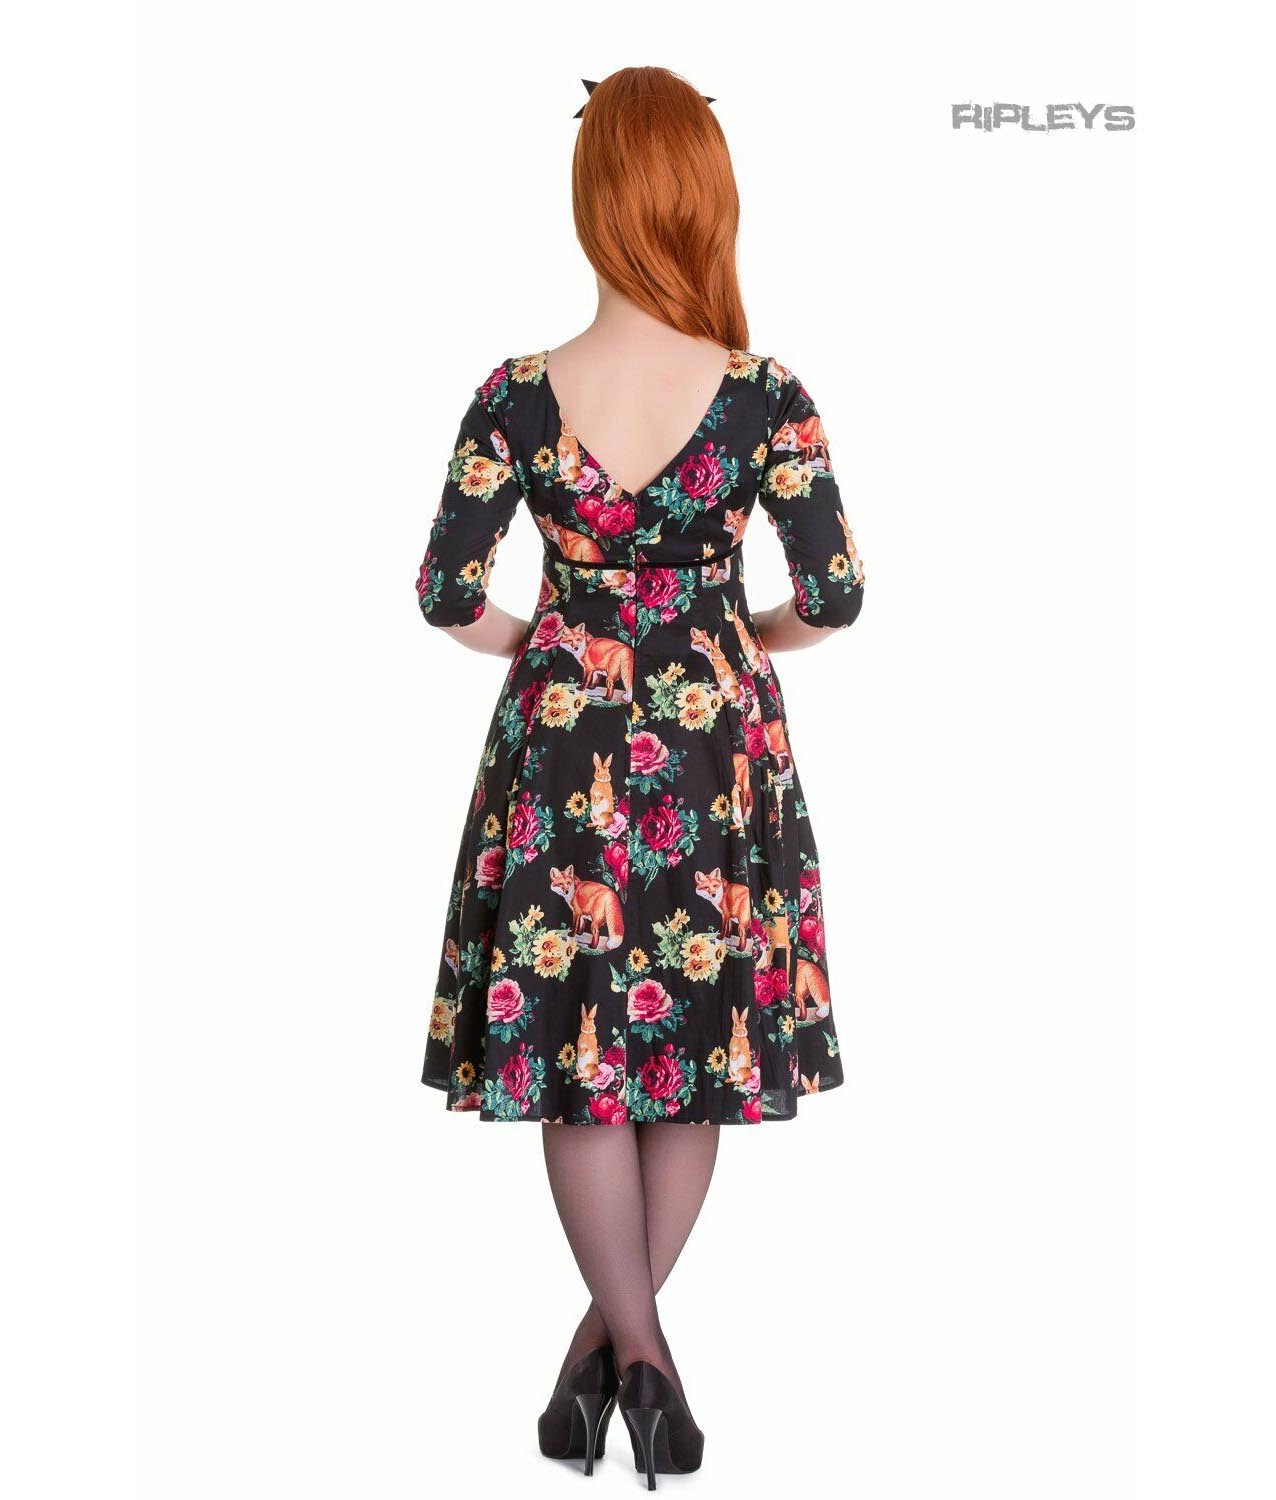 Hell-Bunny-40s-50s-Pin-Up-Vintage-Dress-HERMELINE-Woodland-Fox-All-Sizes thumbnail 12